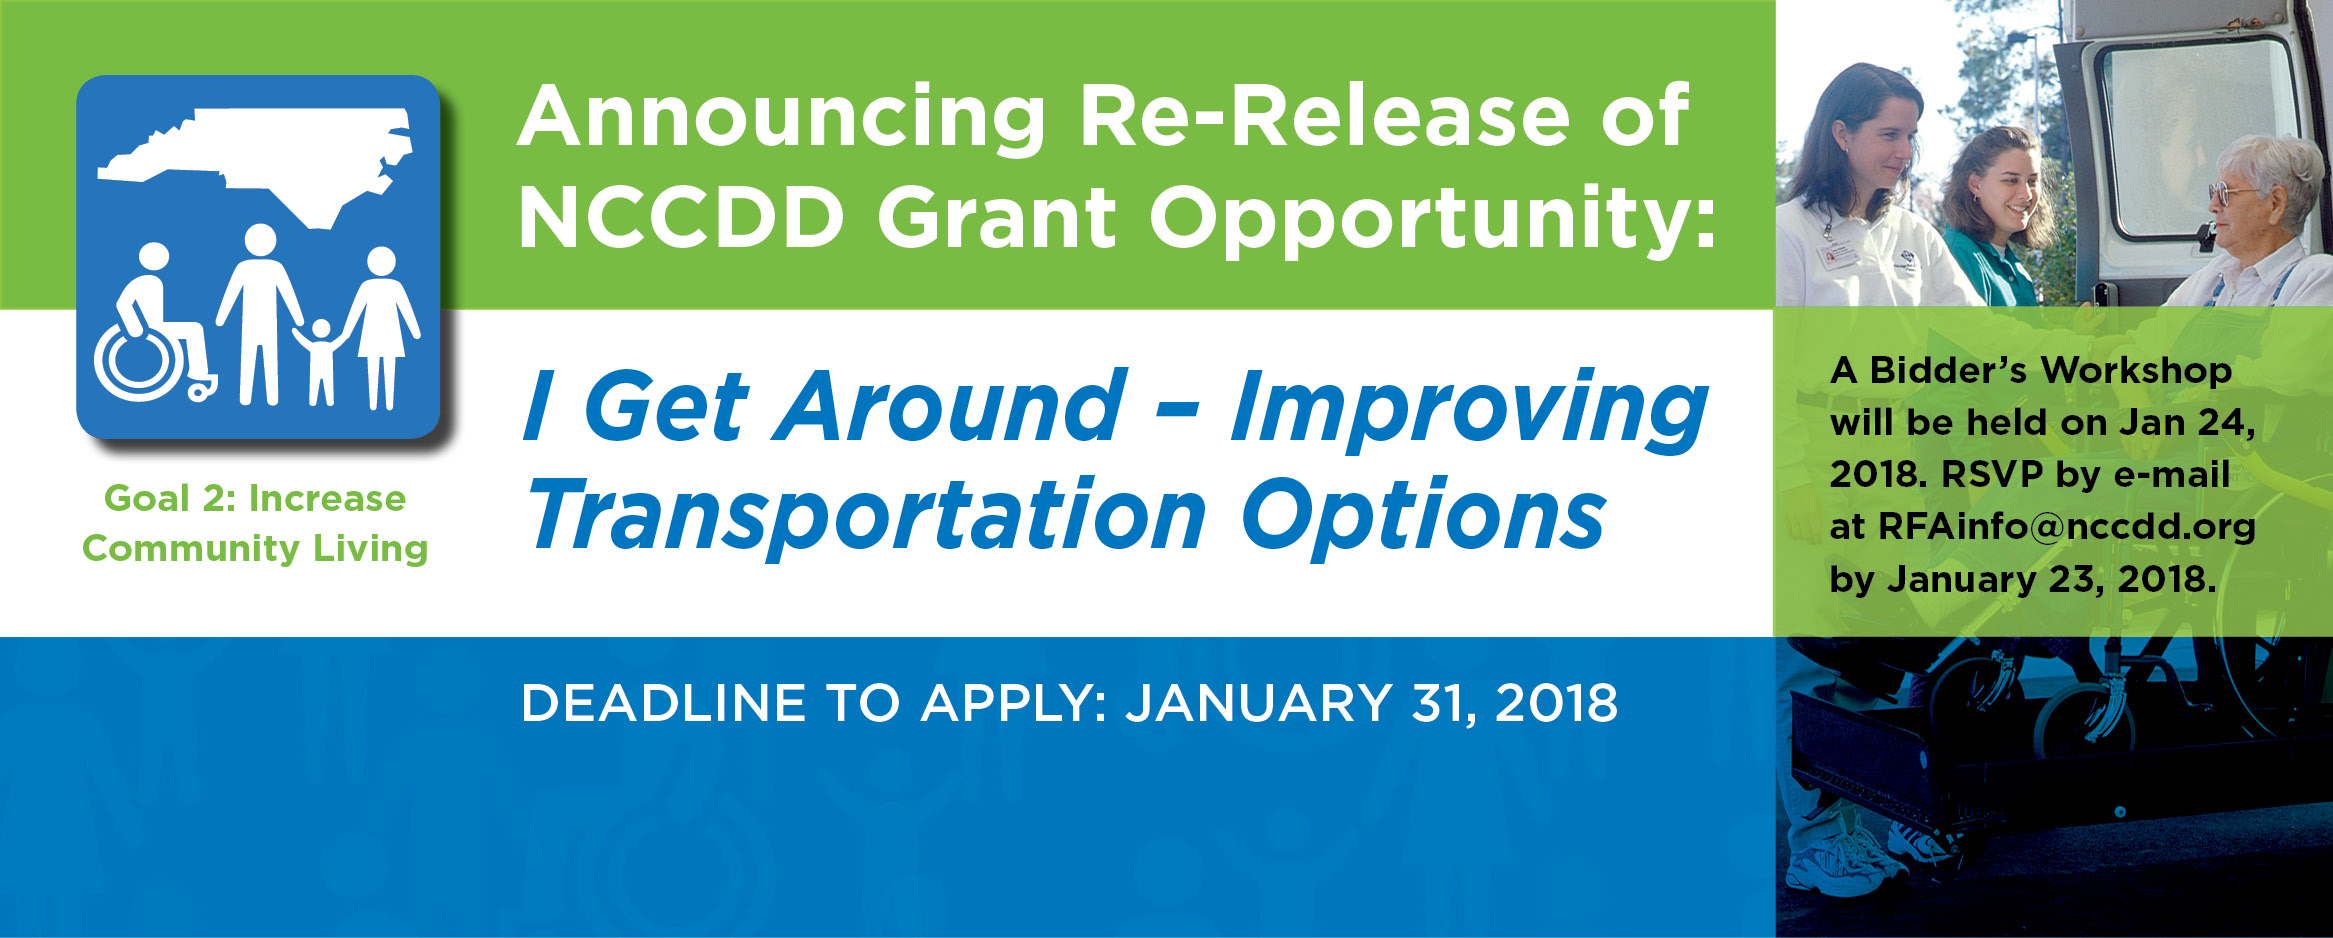 NCCDD Re-Releases Grant – I Get Around – Improving Transportation Options. Click here for details.